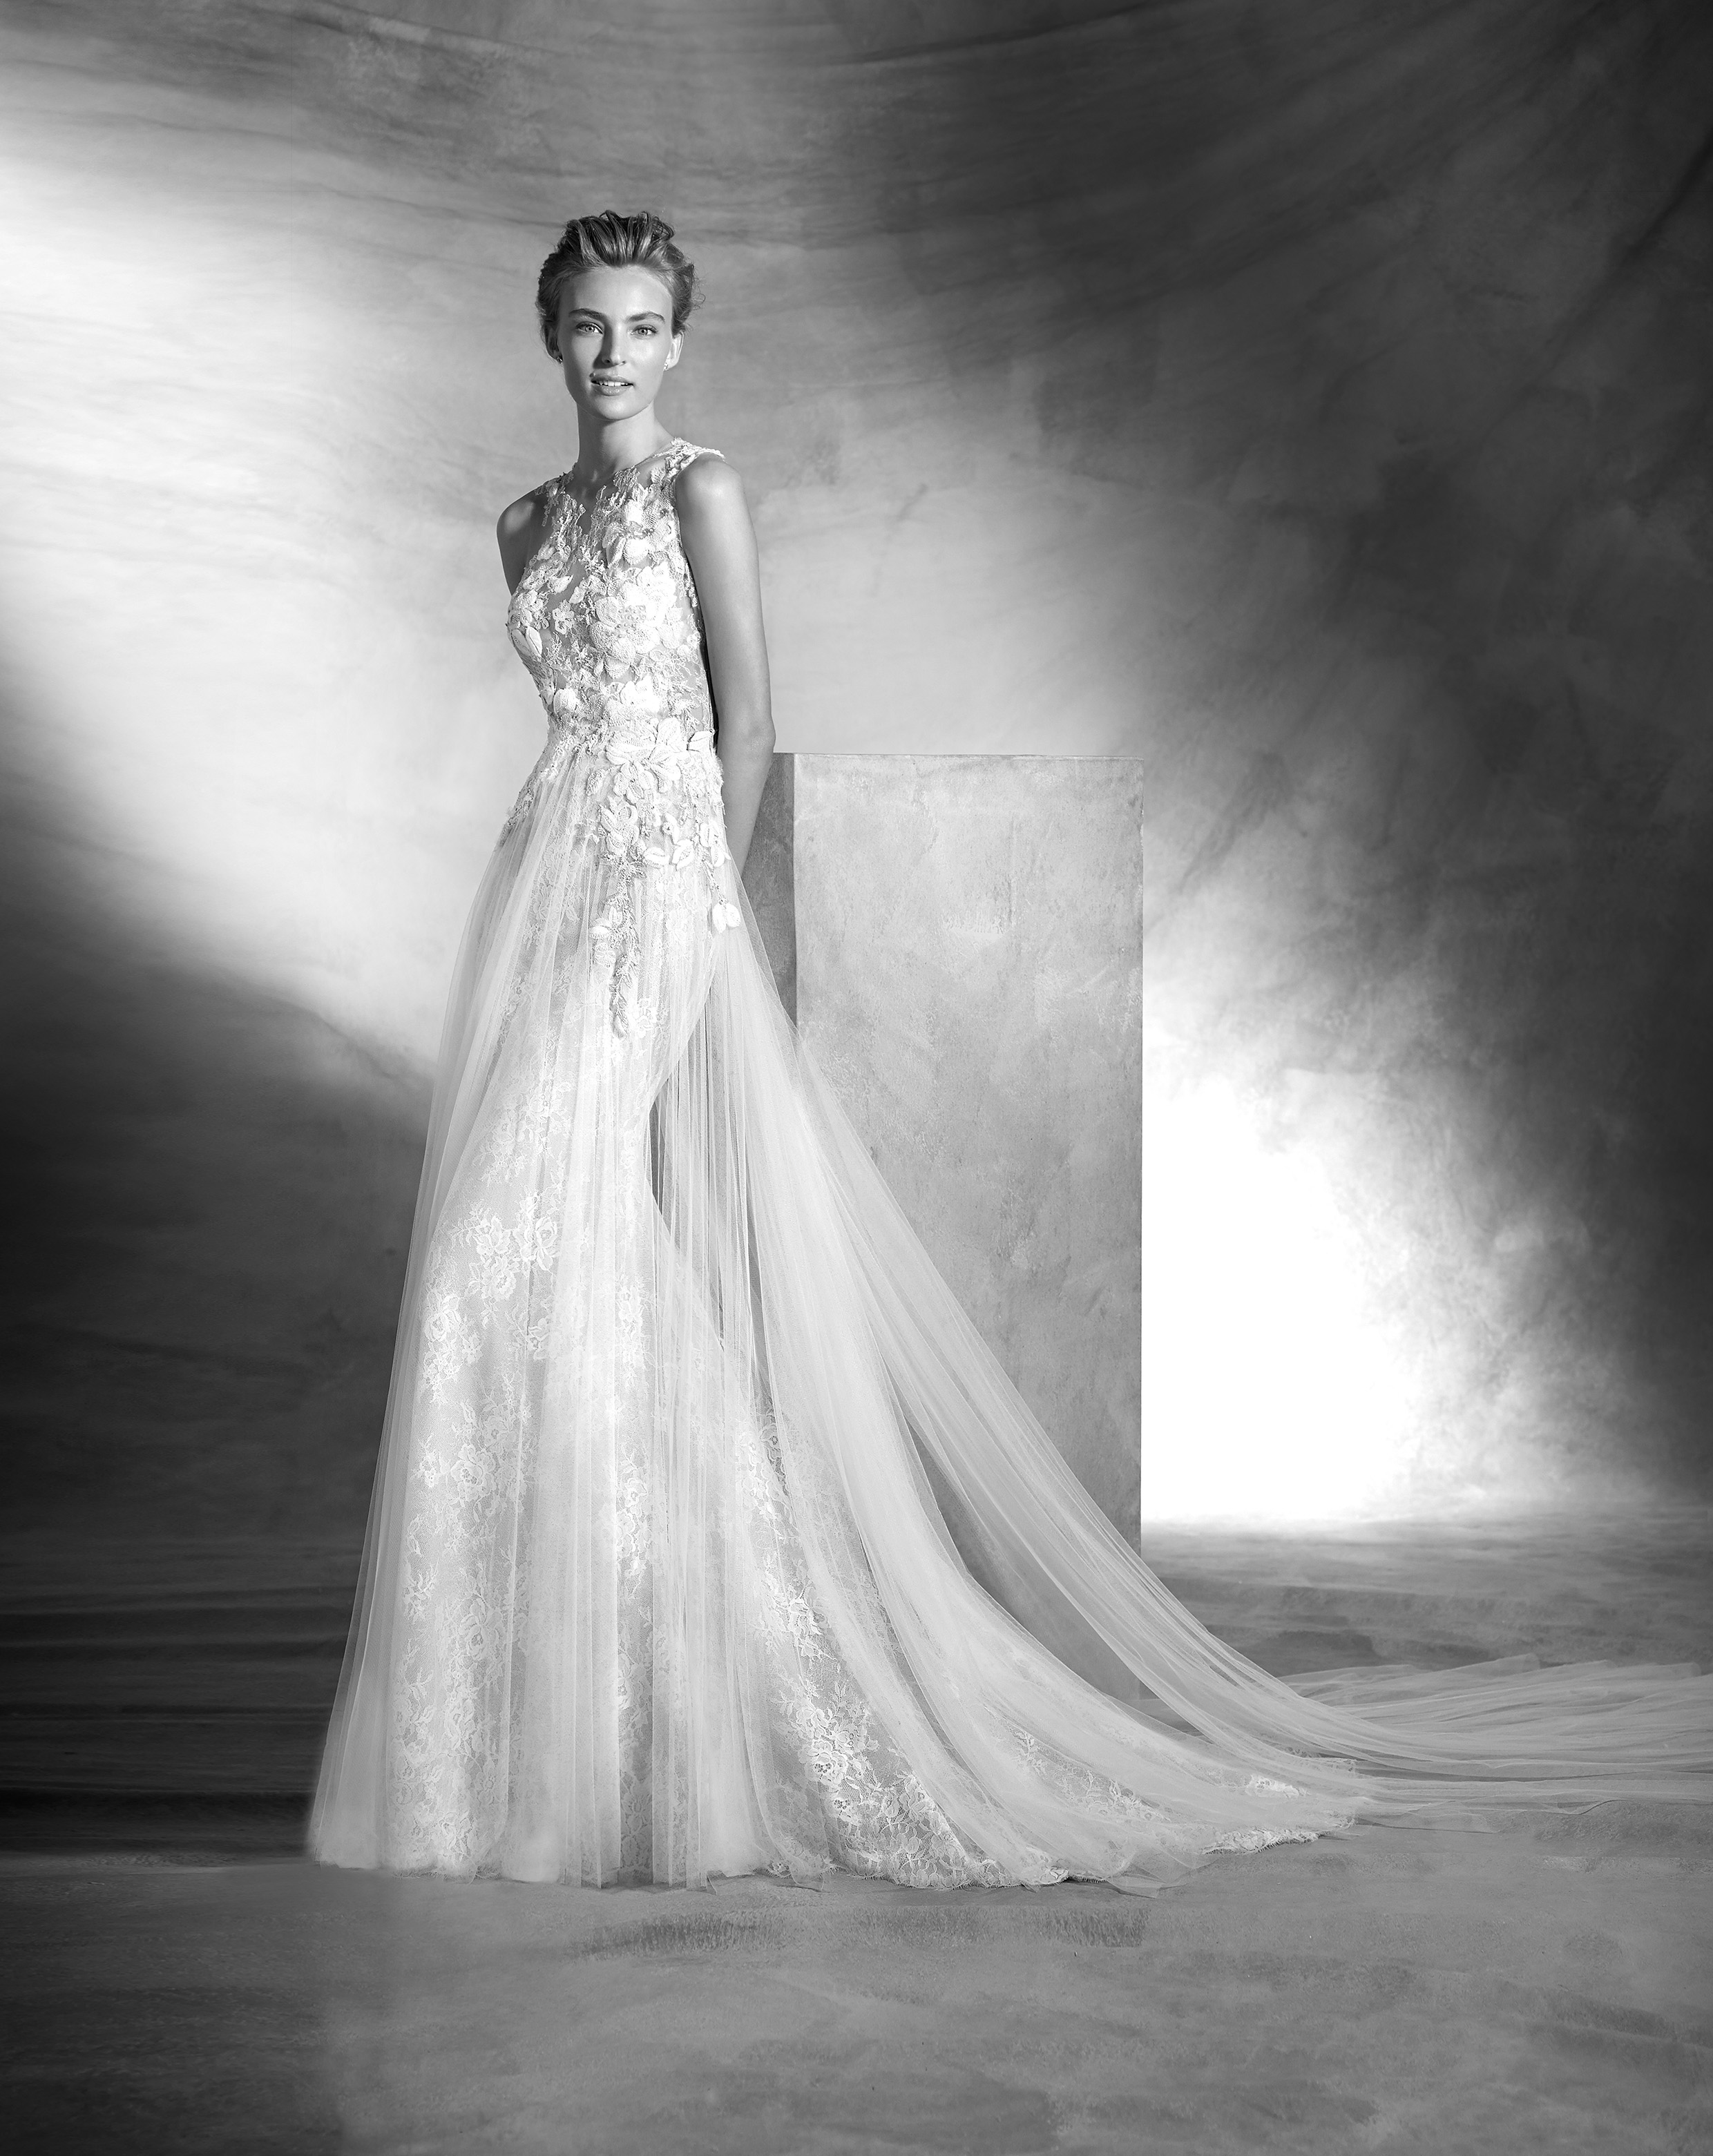 Vintage atelier pronovias 2016 bridalpulse wedding dress gallery bridalpulse wedding dress gallery atelier pronovias 2016 floor ivory mermaid trumpet illusion ombrellifo Choice Image